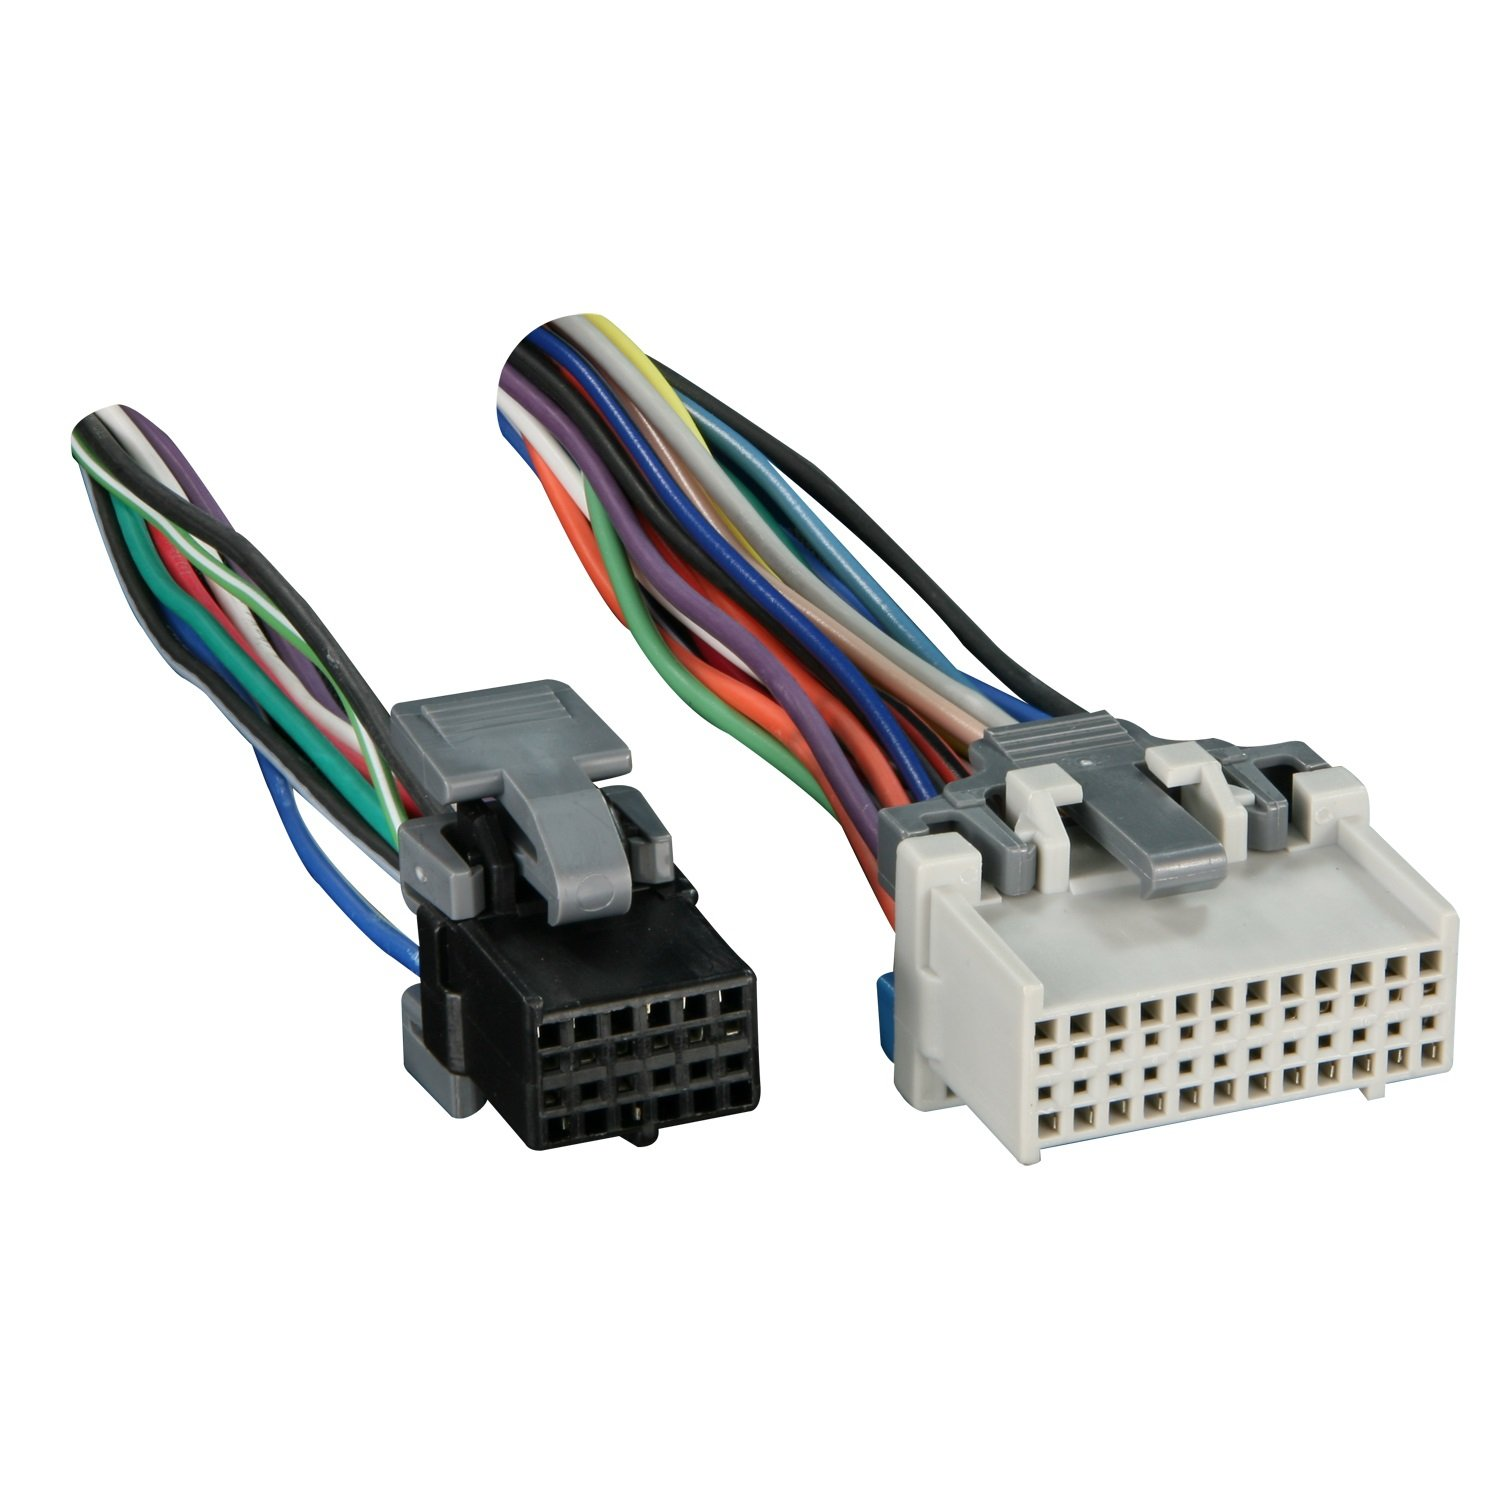 711log4bdML._SL1500_ amazon com metra turbowires 71 2003 1 wiring harness car electronics where to buy a trailer wiring harness at edmiracle.co